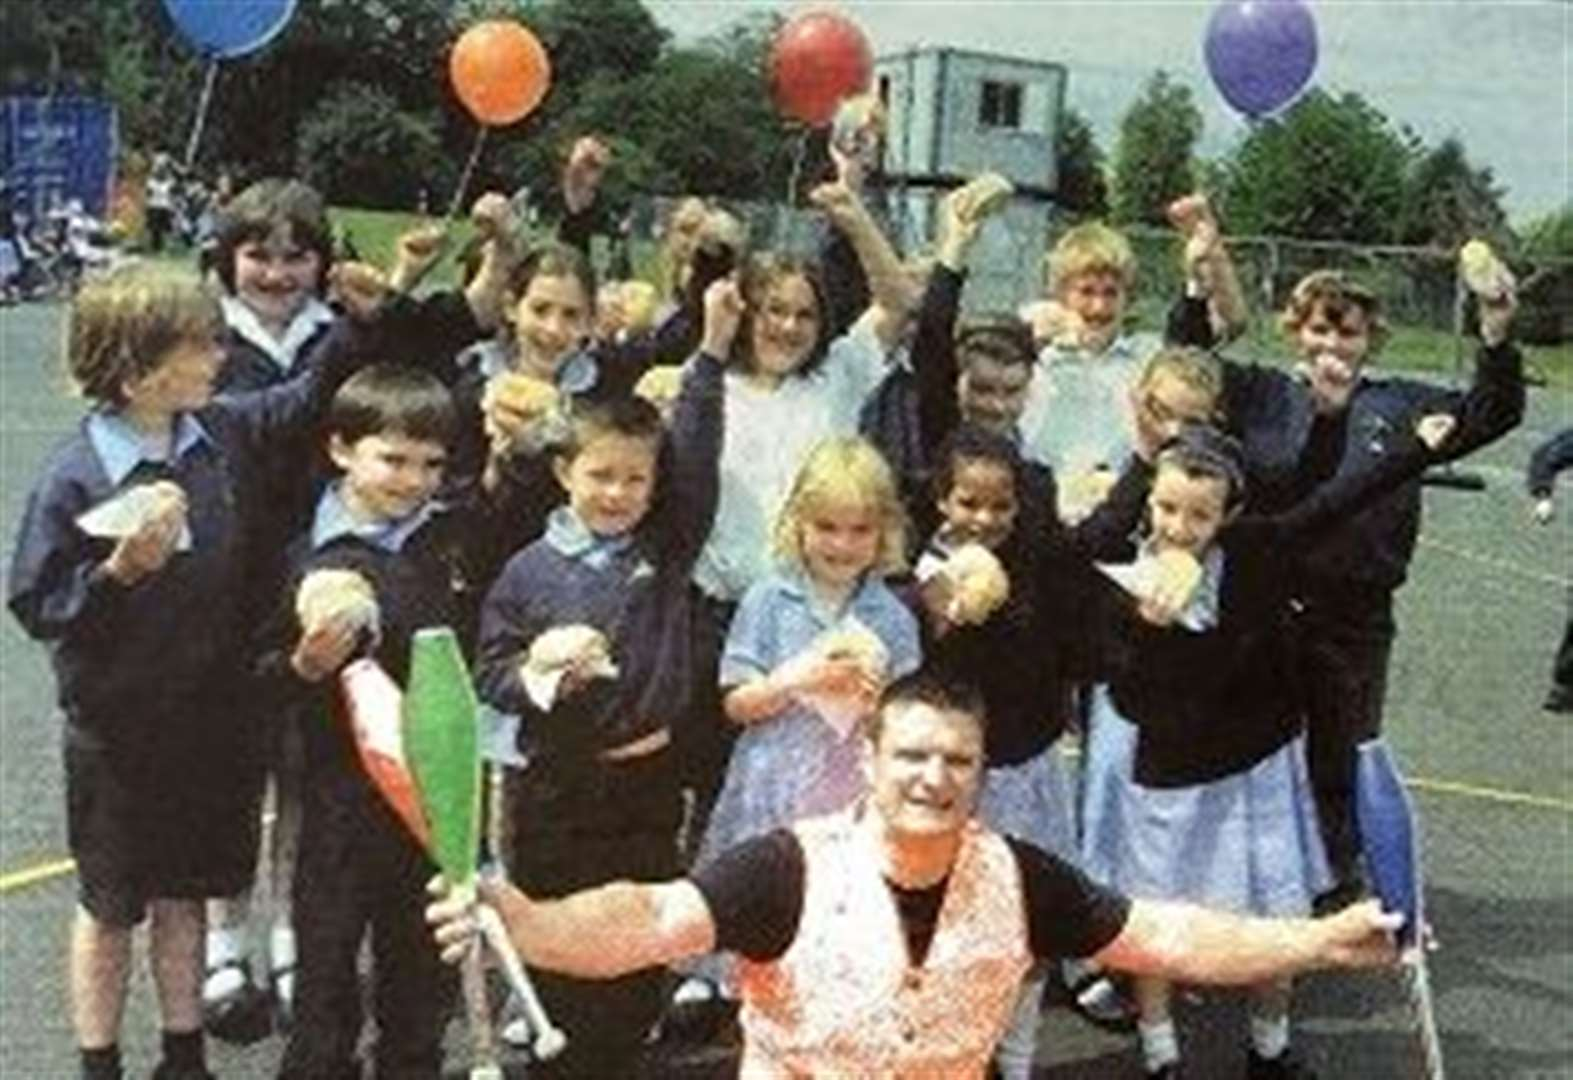 NOSTALGIA: 146 balloons released as part of celebrations 10 years ago